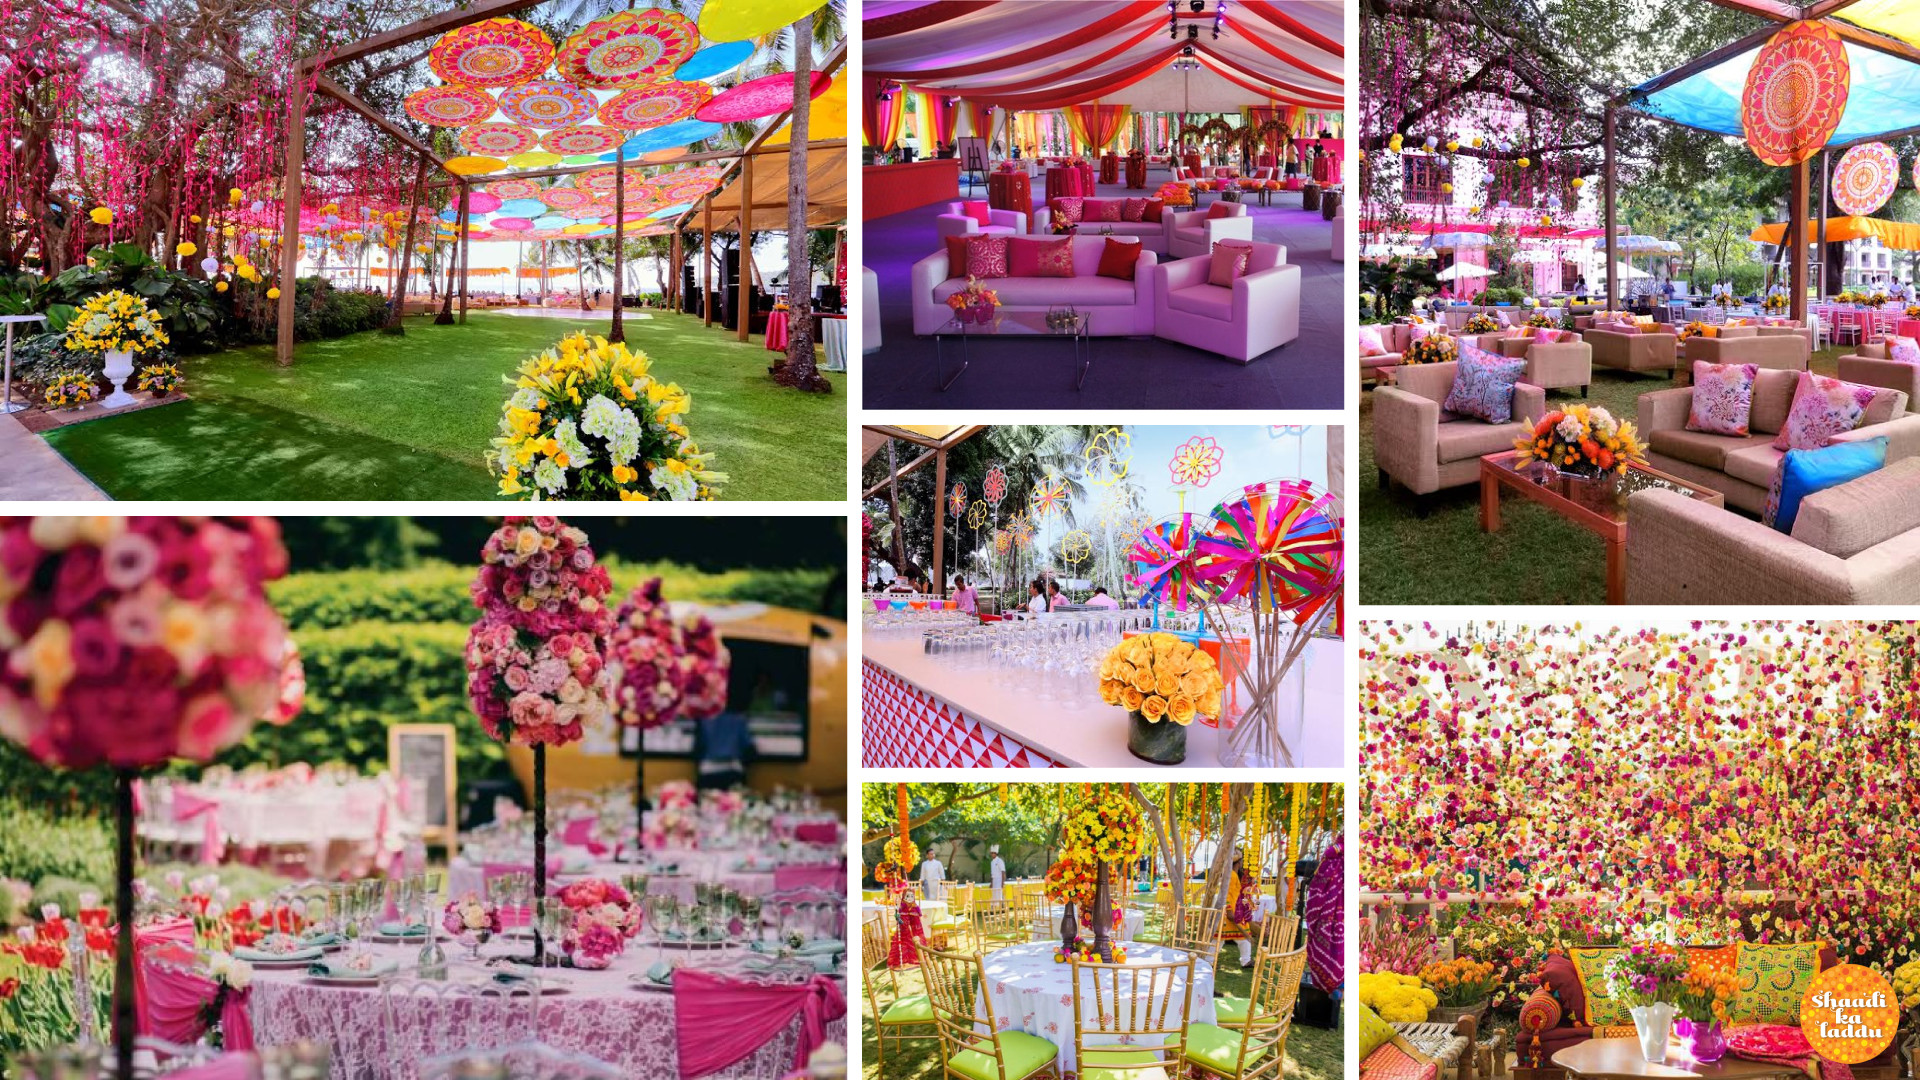 colorful and creative wedding ceremony decorations by wedding planner